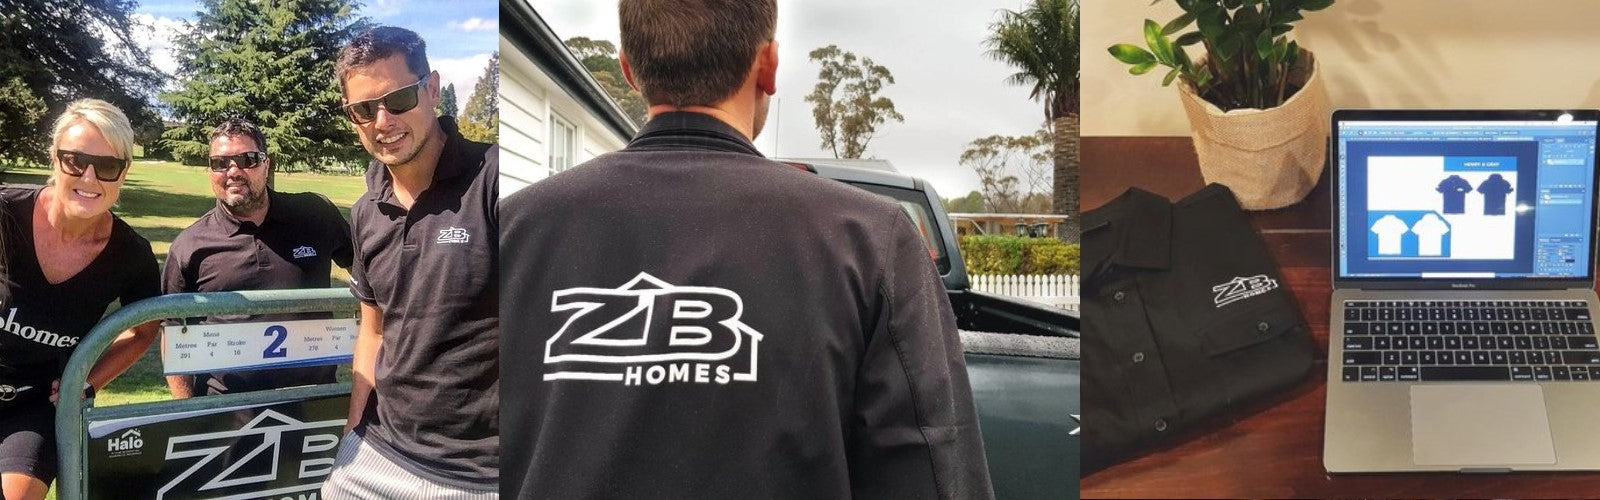 ZB Homes Jackets and Polos